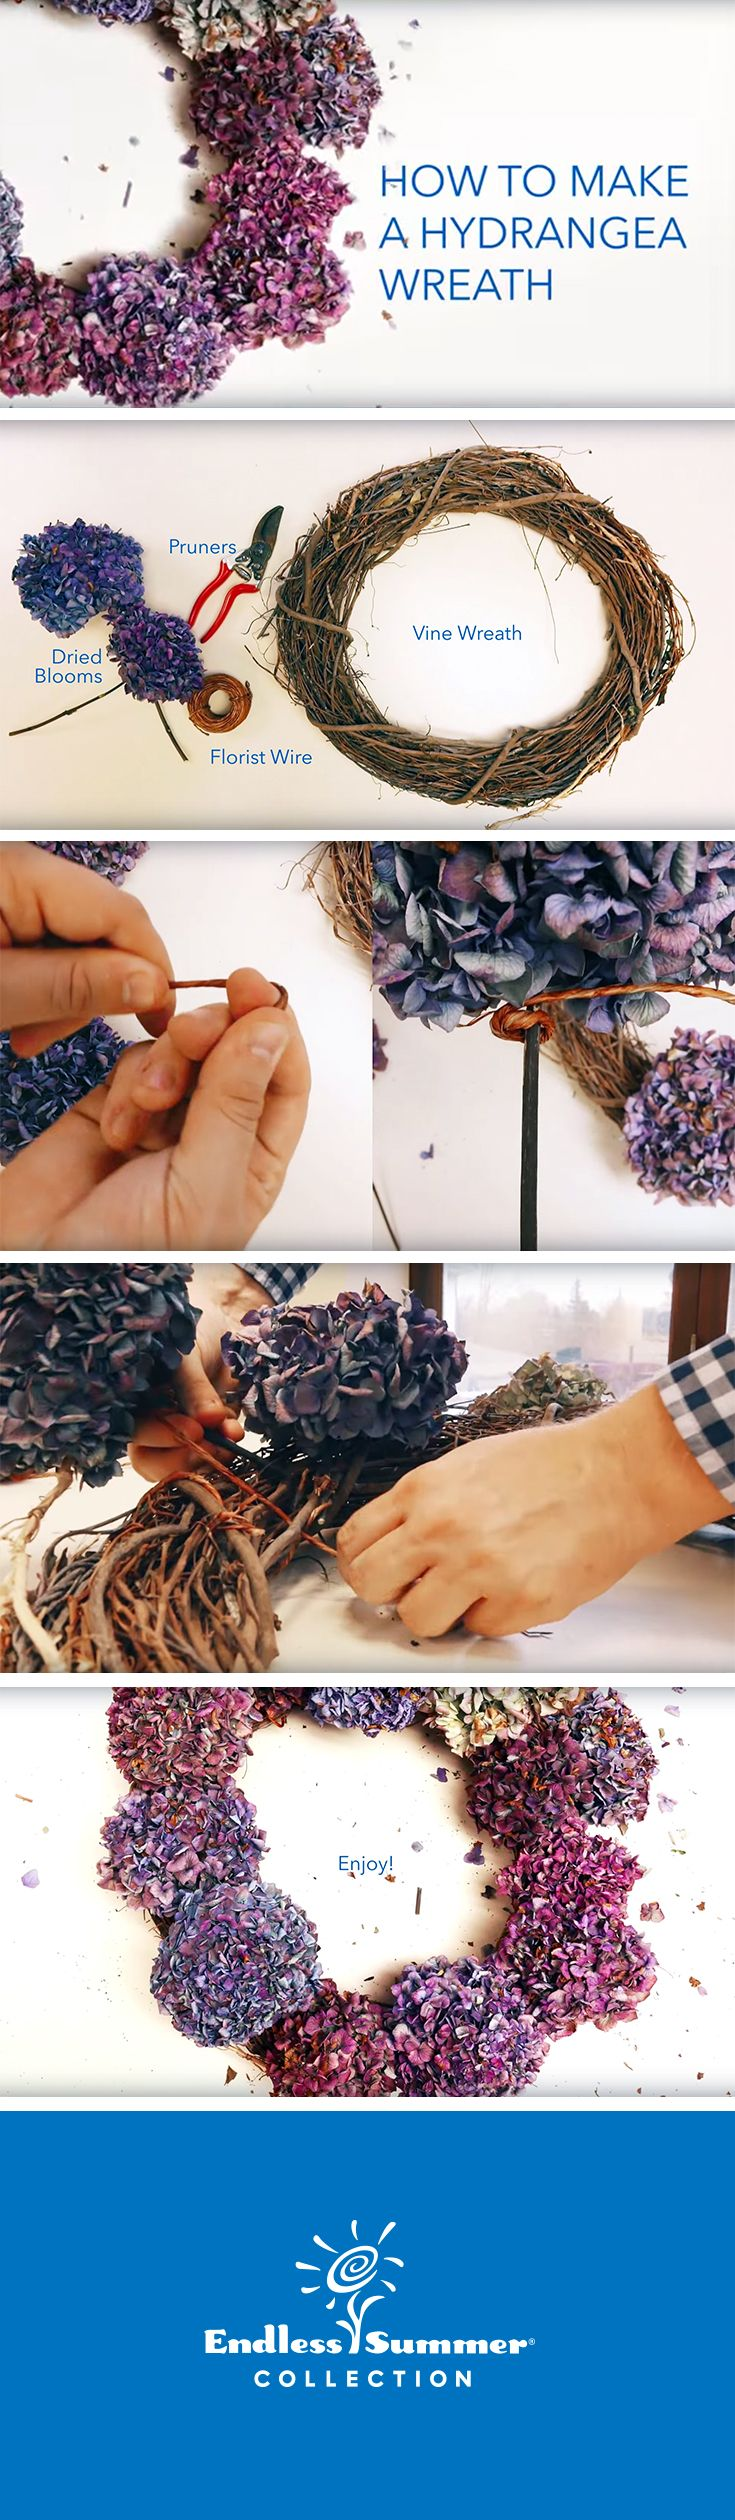 Making a hydrangea wreath for the holidays and winter months is easy! Cut Endless Summer® Hydrangea blooms from your garden and enjoy all season long with these easy steps.